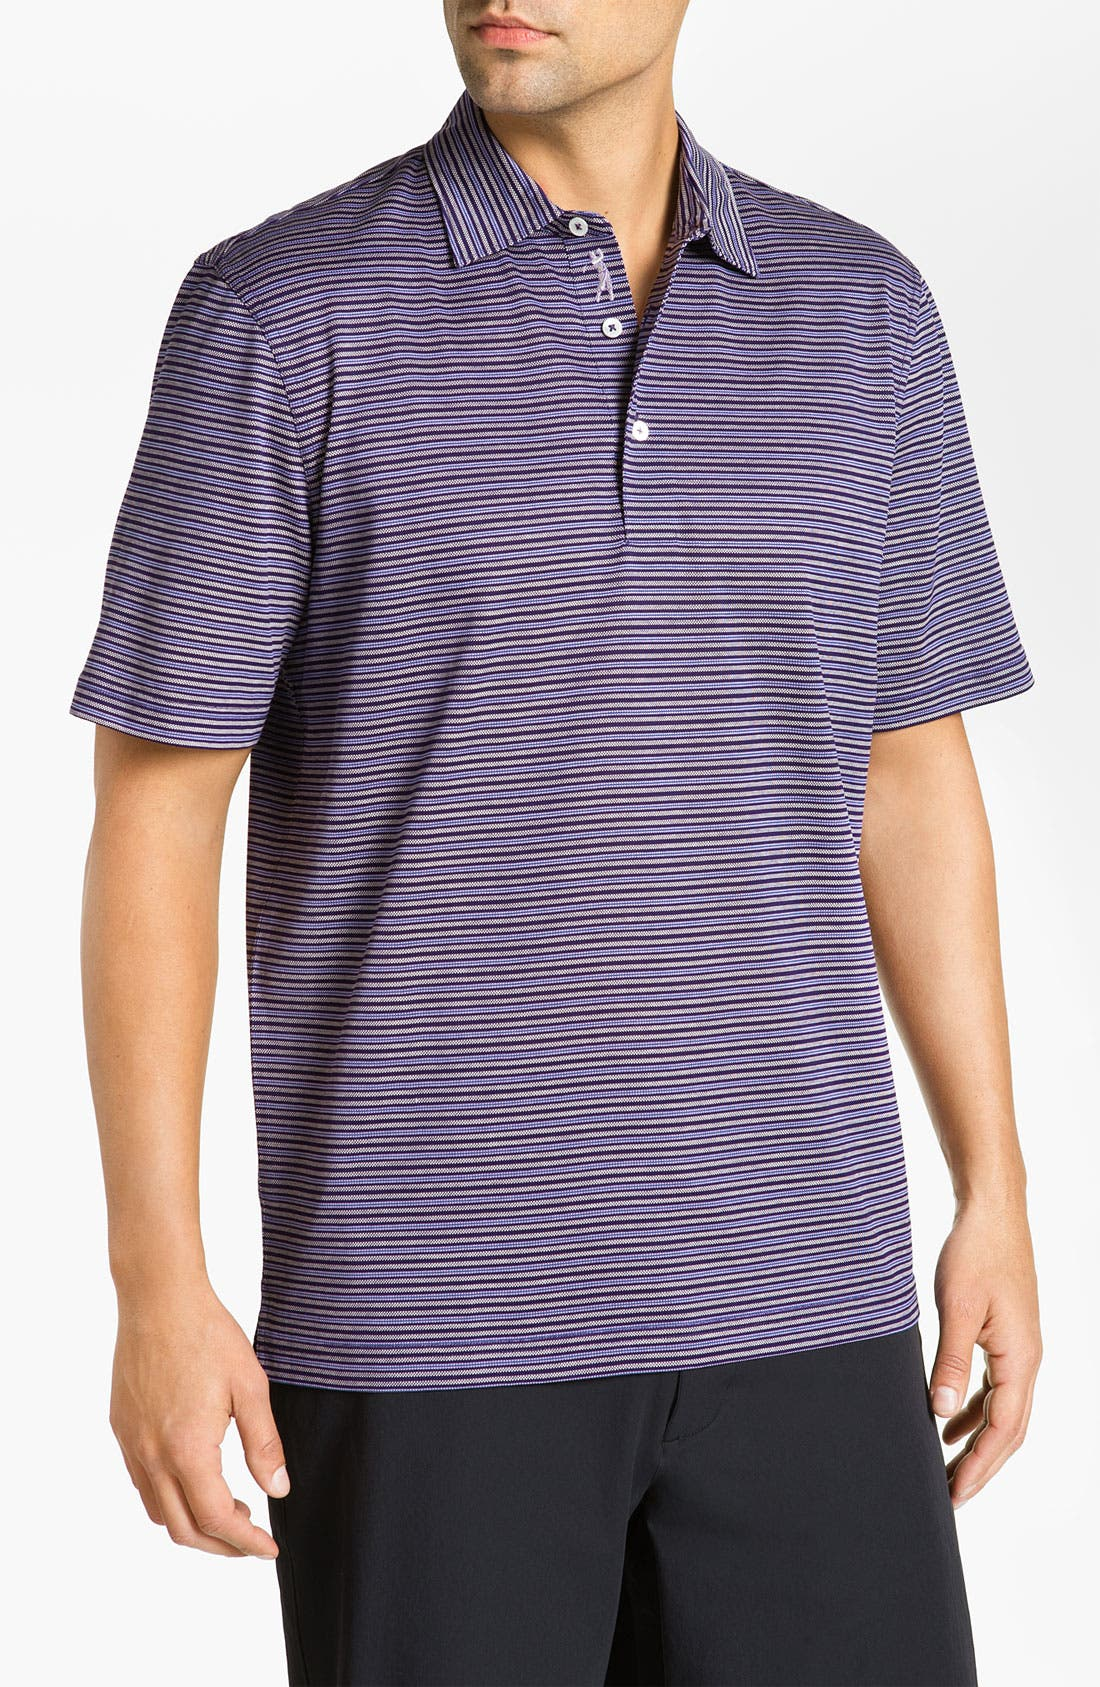 Alternate Image 1 Selected - Bobby Jones Stripe Piqué Polo